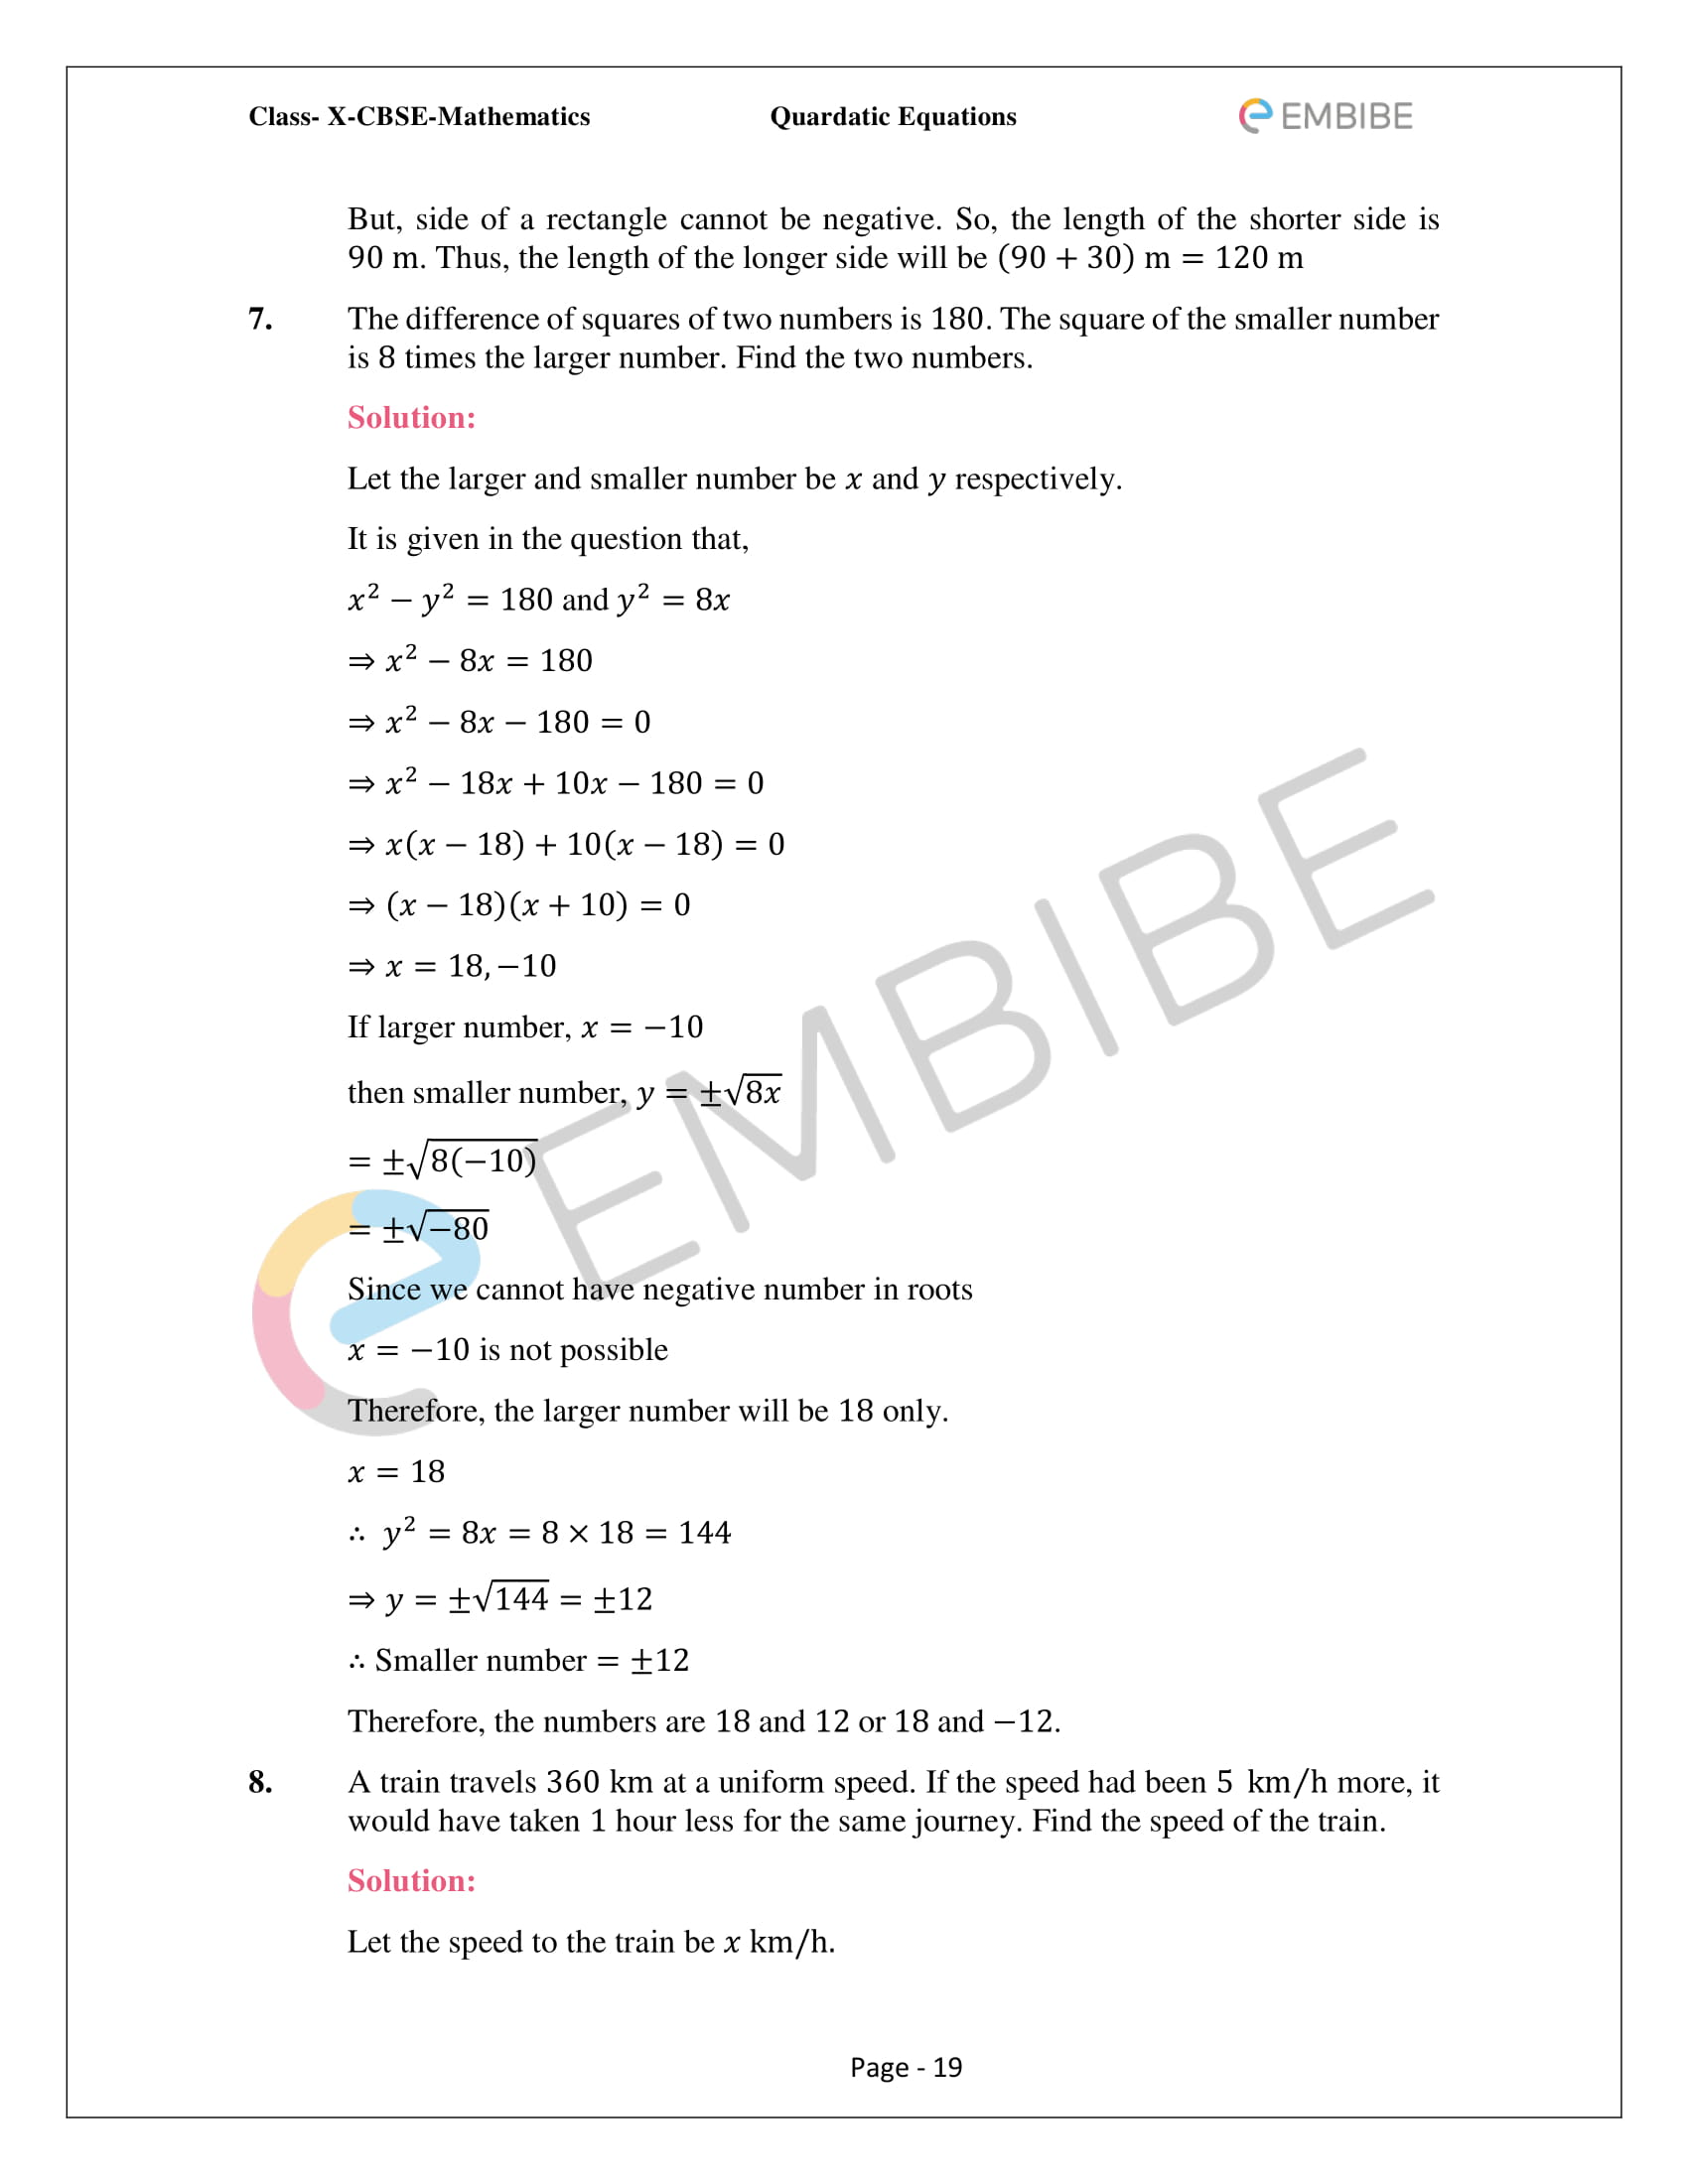 CBSE NCERT Solutions For Class 10 Maths Chapter 4 – Quadratic Equations - 19